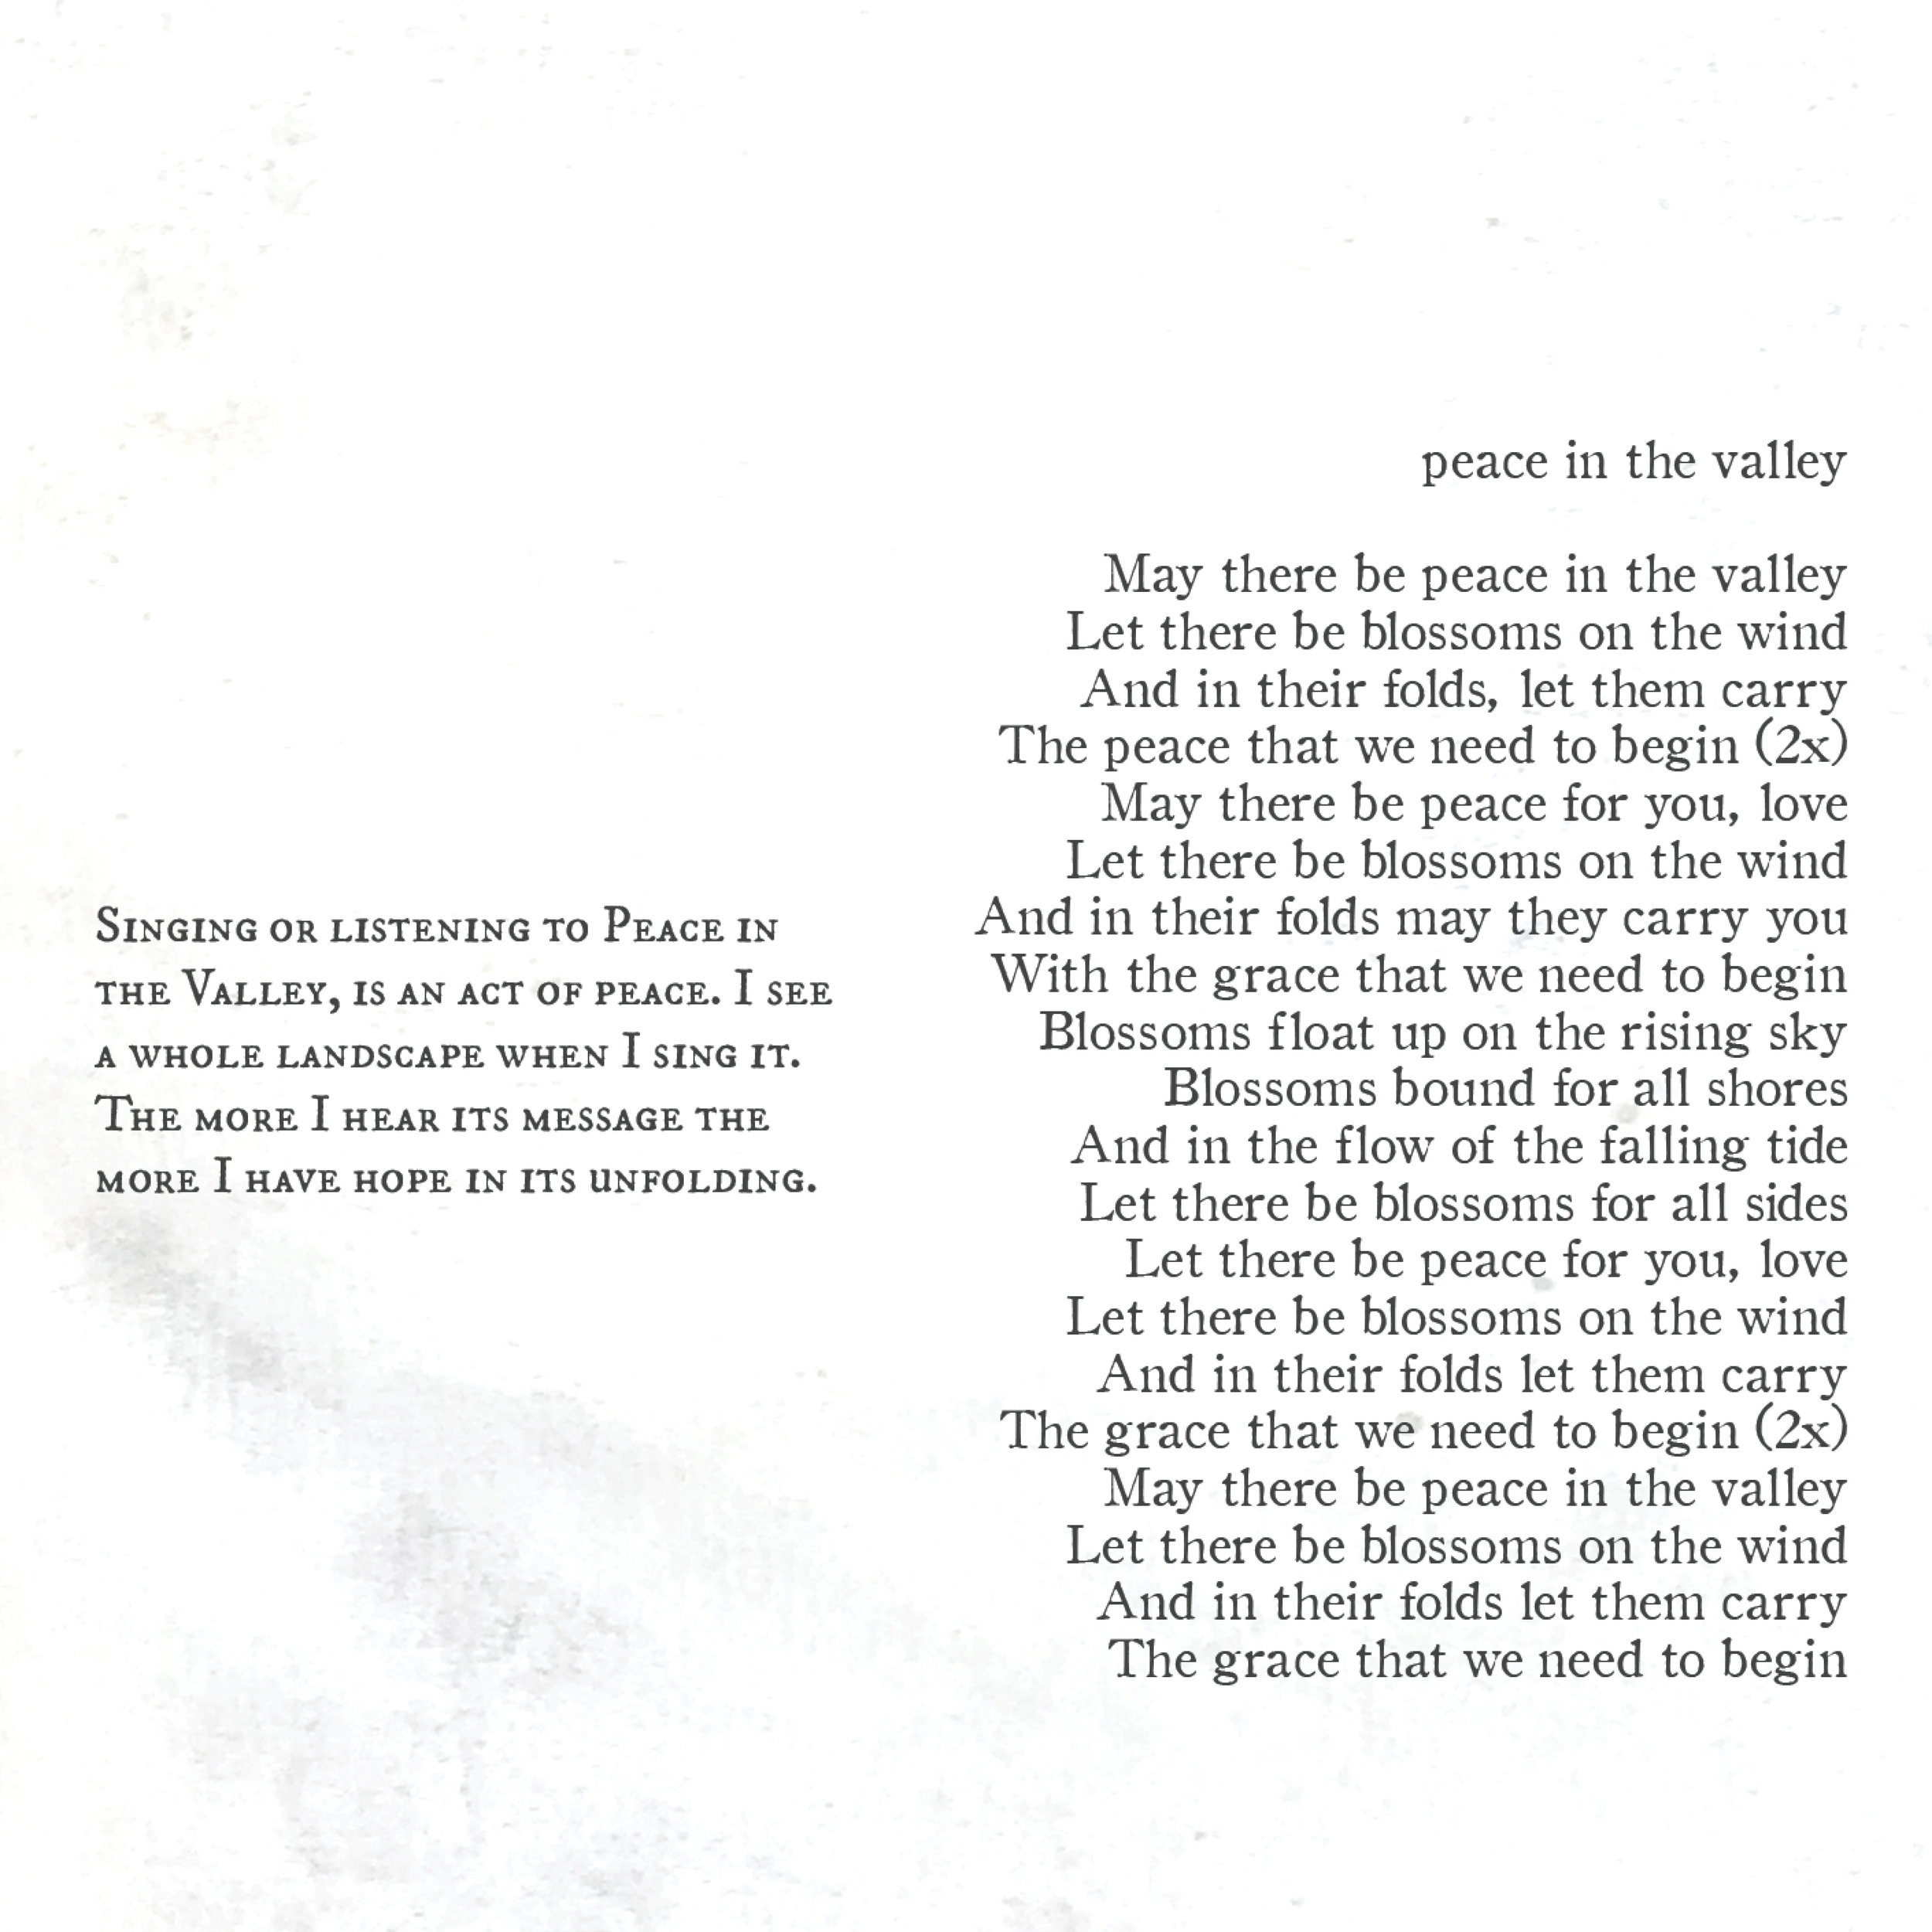 IsaacTaylor-PeaceInTheValley-digitalbooklet 13.png